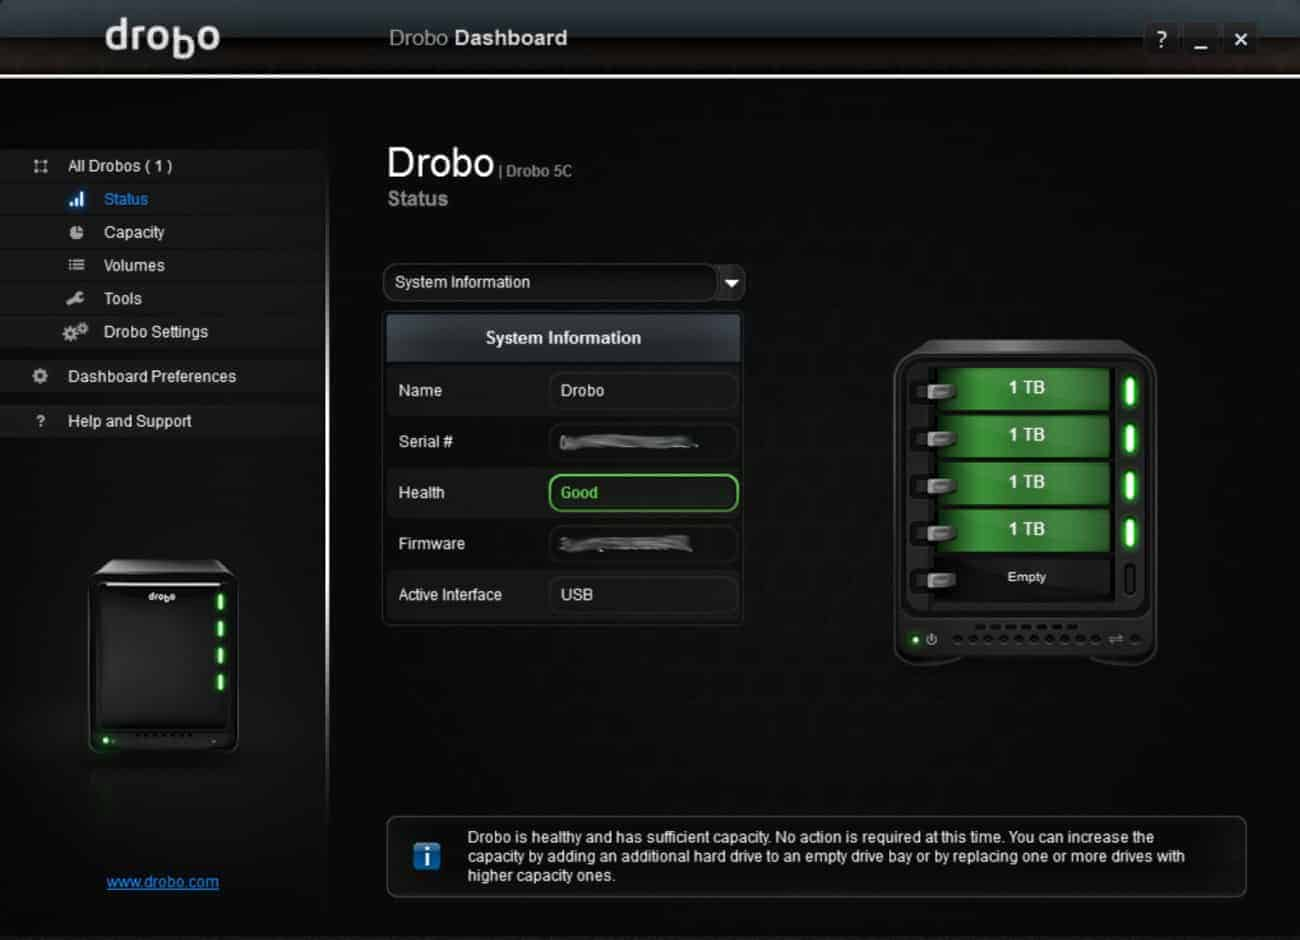 Drobo 5C DAS Review - The Streaming Blog